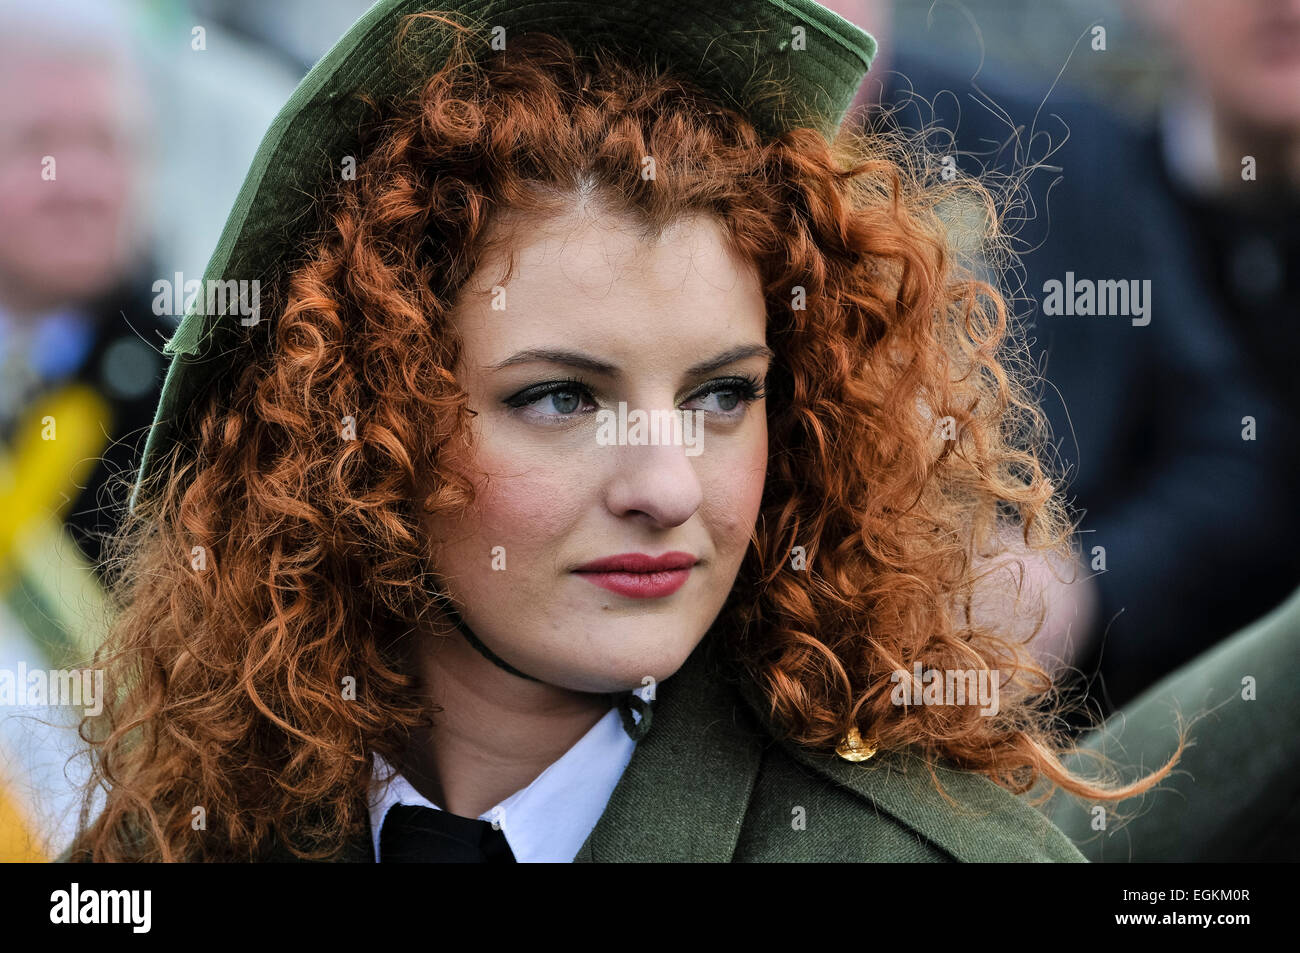 A pretty Irish young woman with curly red hair. Stock Photo